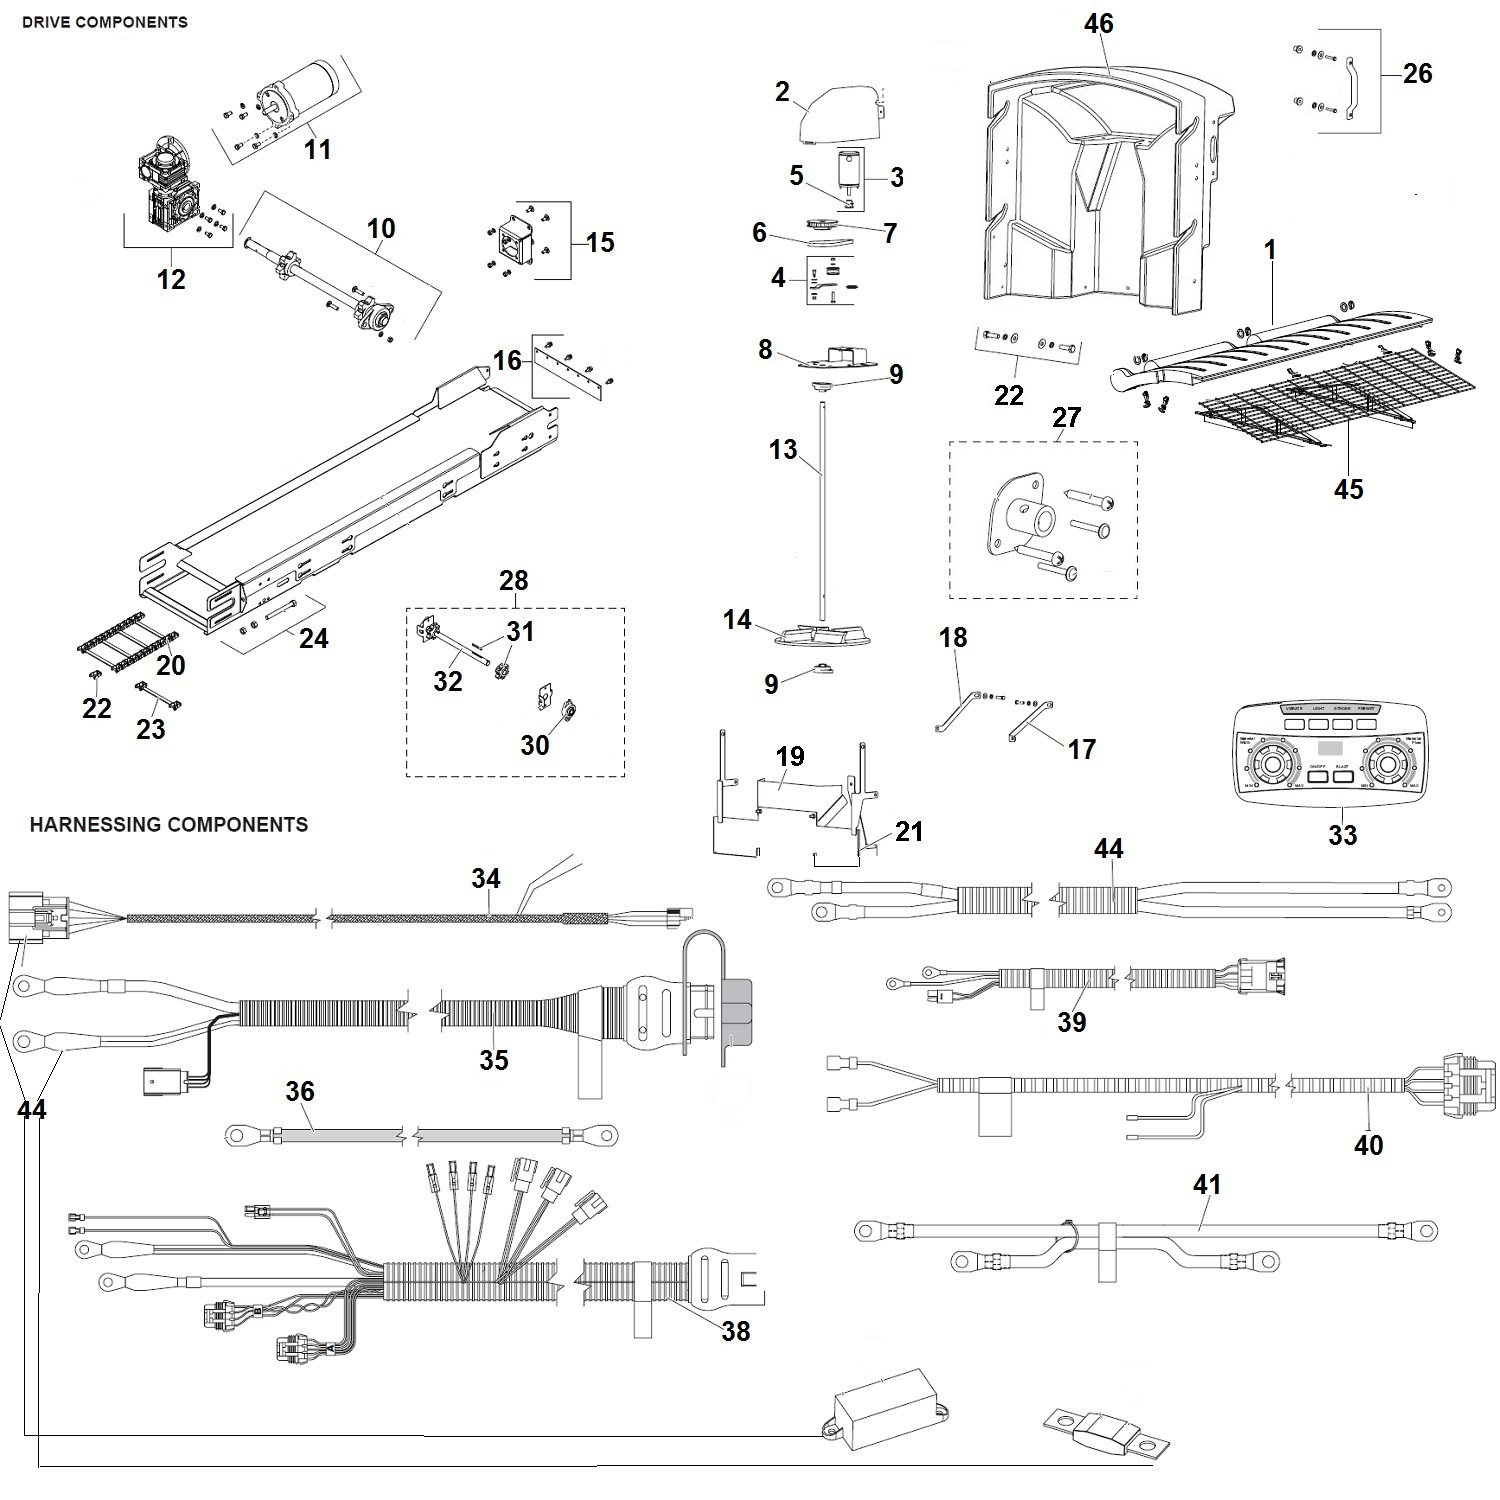 Fisher Poly Caster Salt Spreader Parts Diagram / Schematic